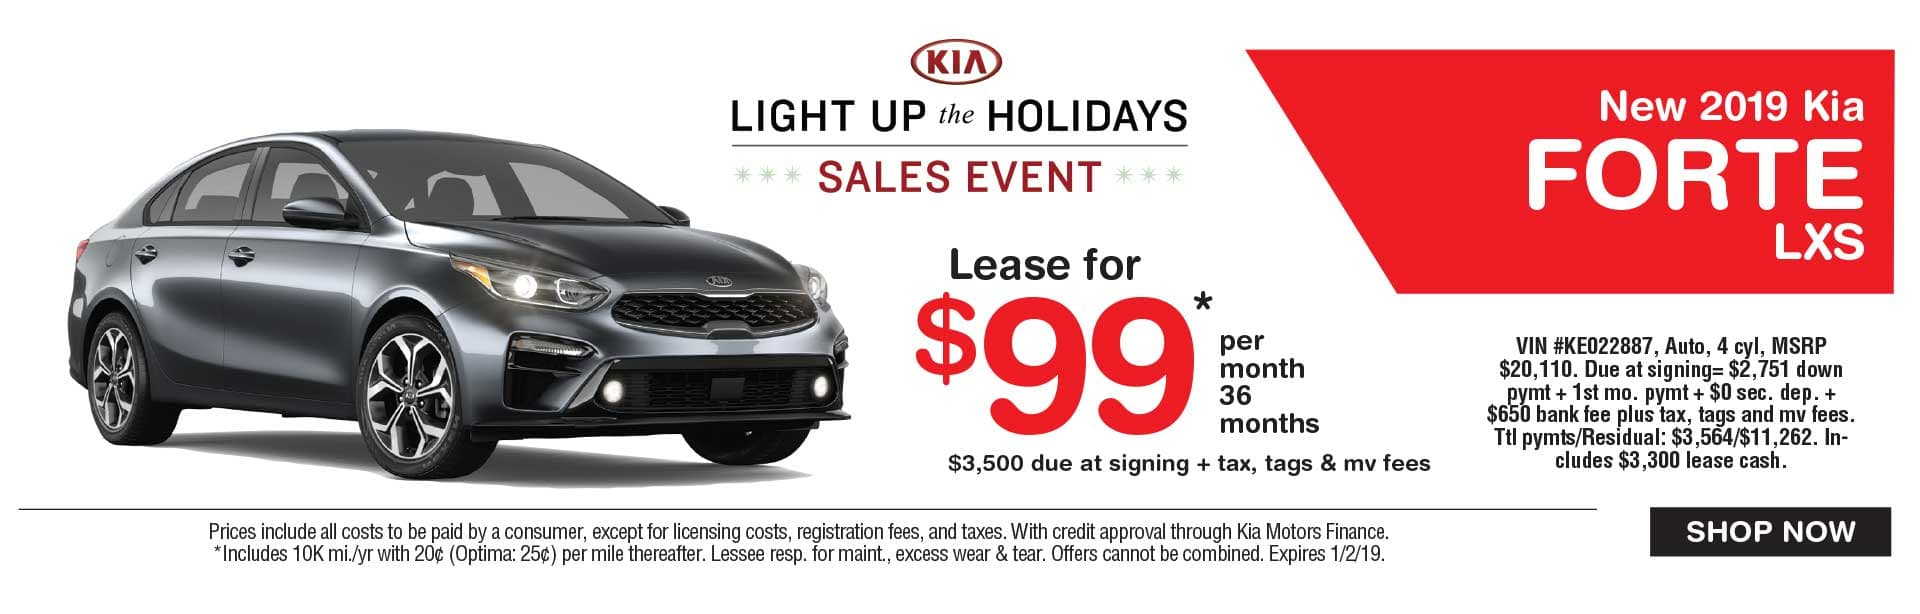 Kia Forte lease savings at Global Kia